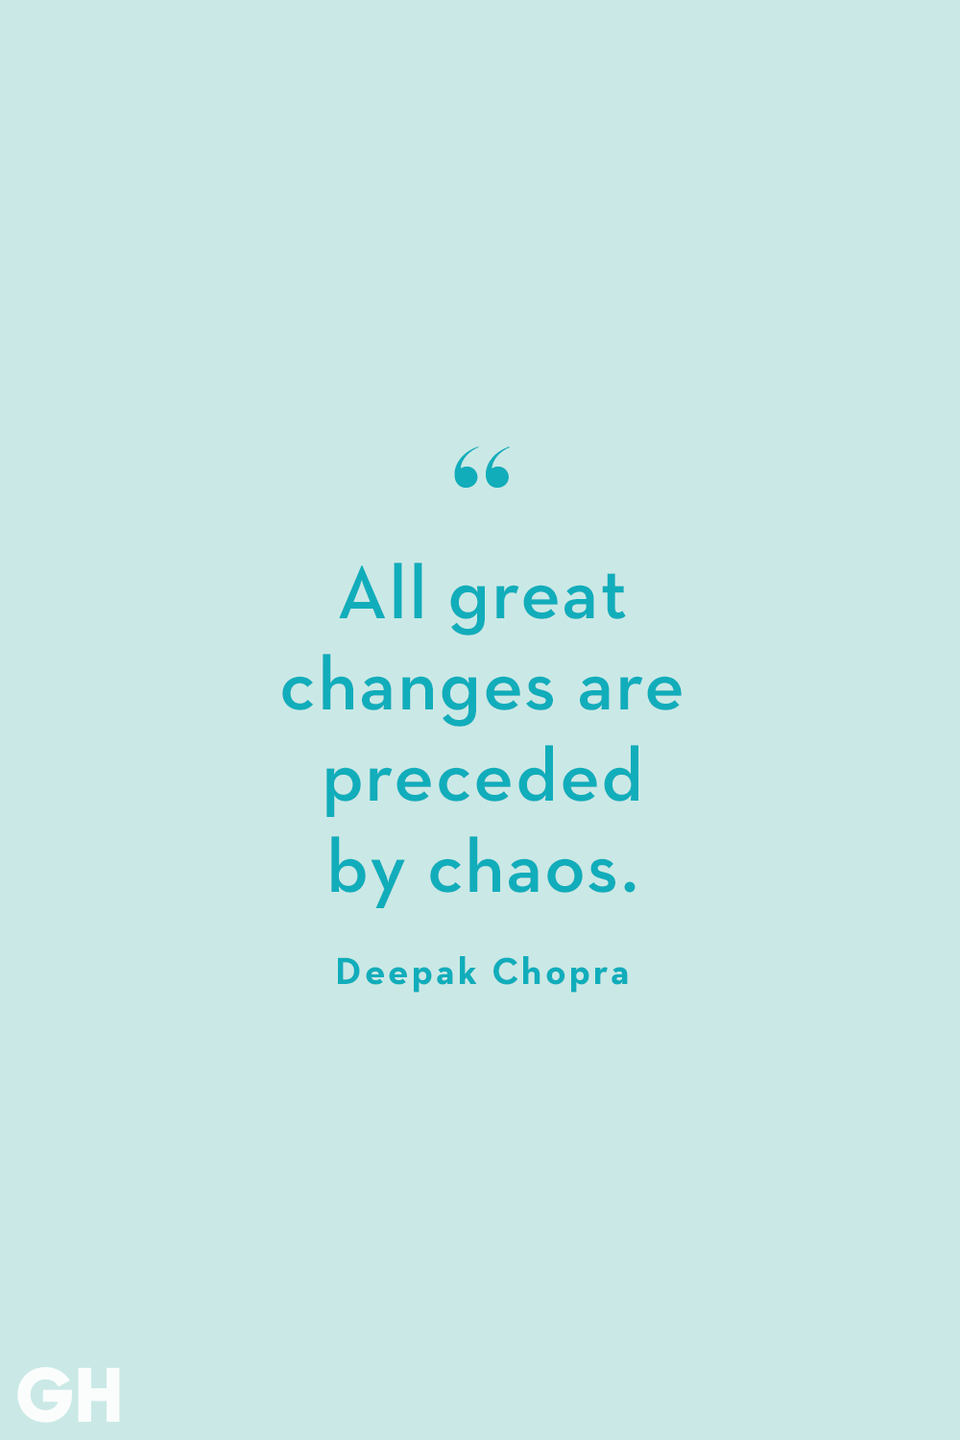 <p>All great changes are preceded by choas. </p>